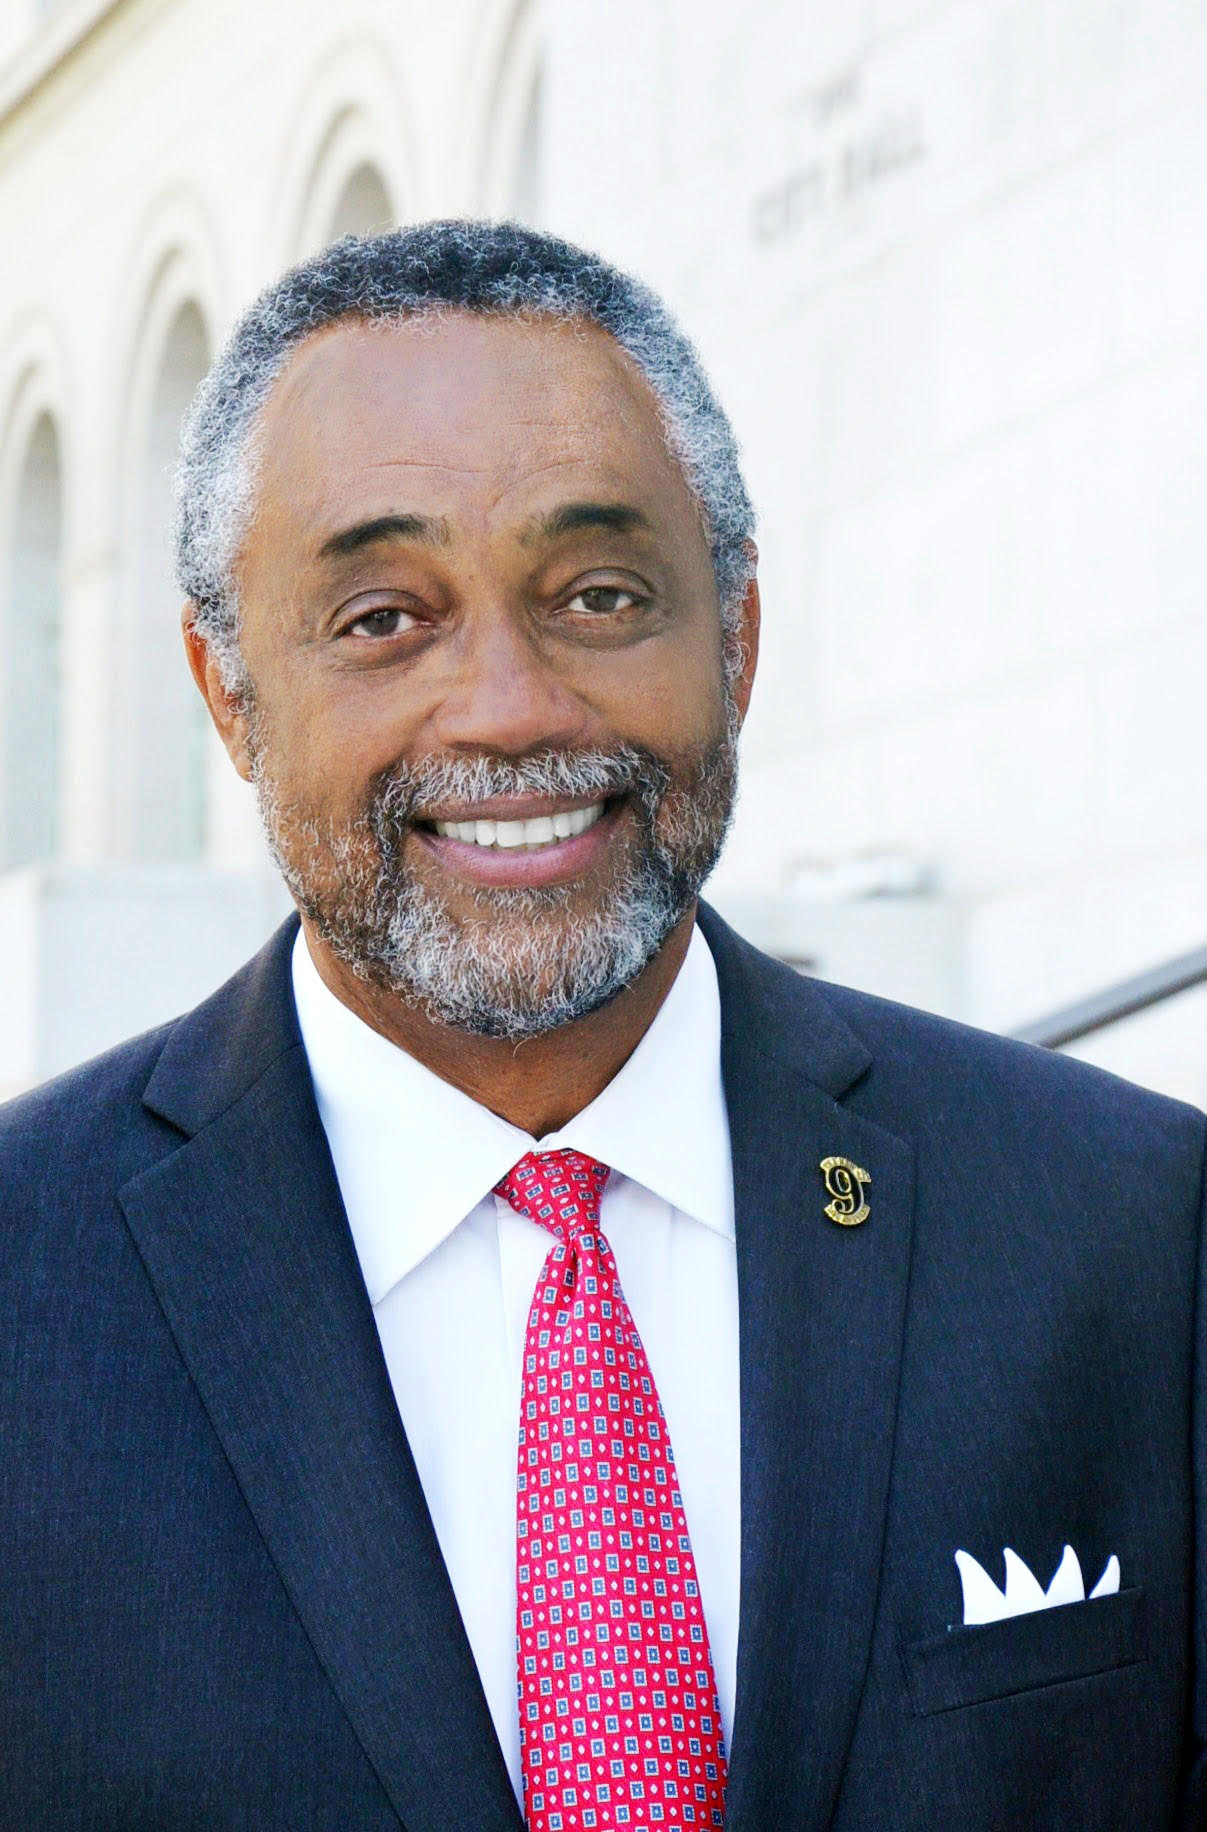 Councilman_Price_(cleaned_up).jpg